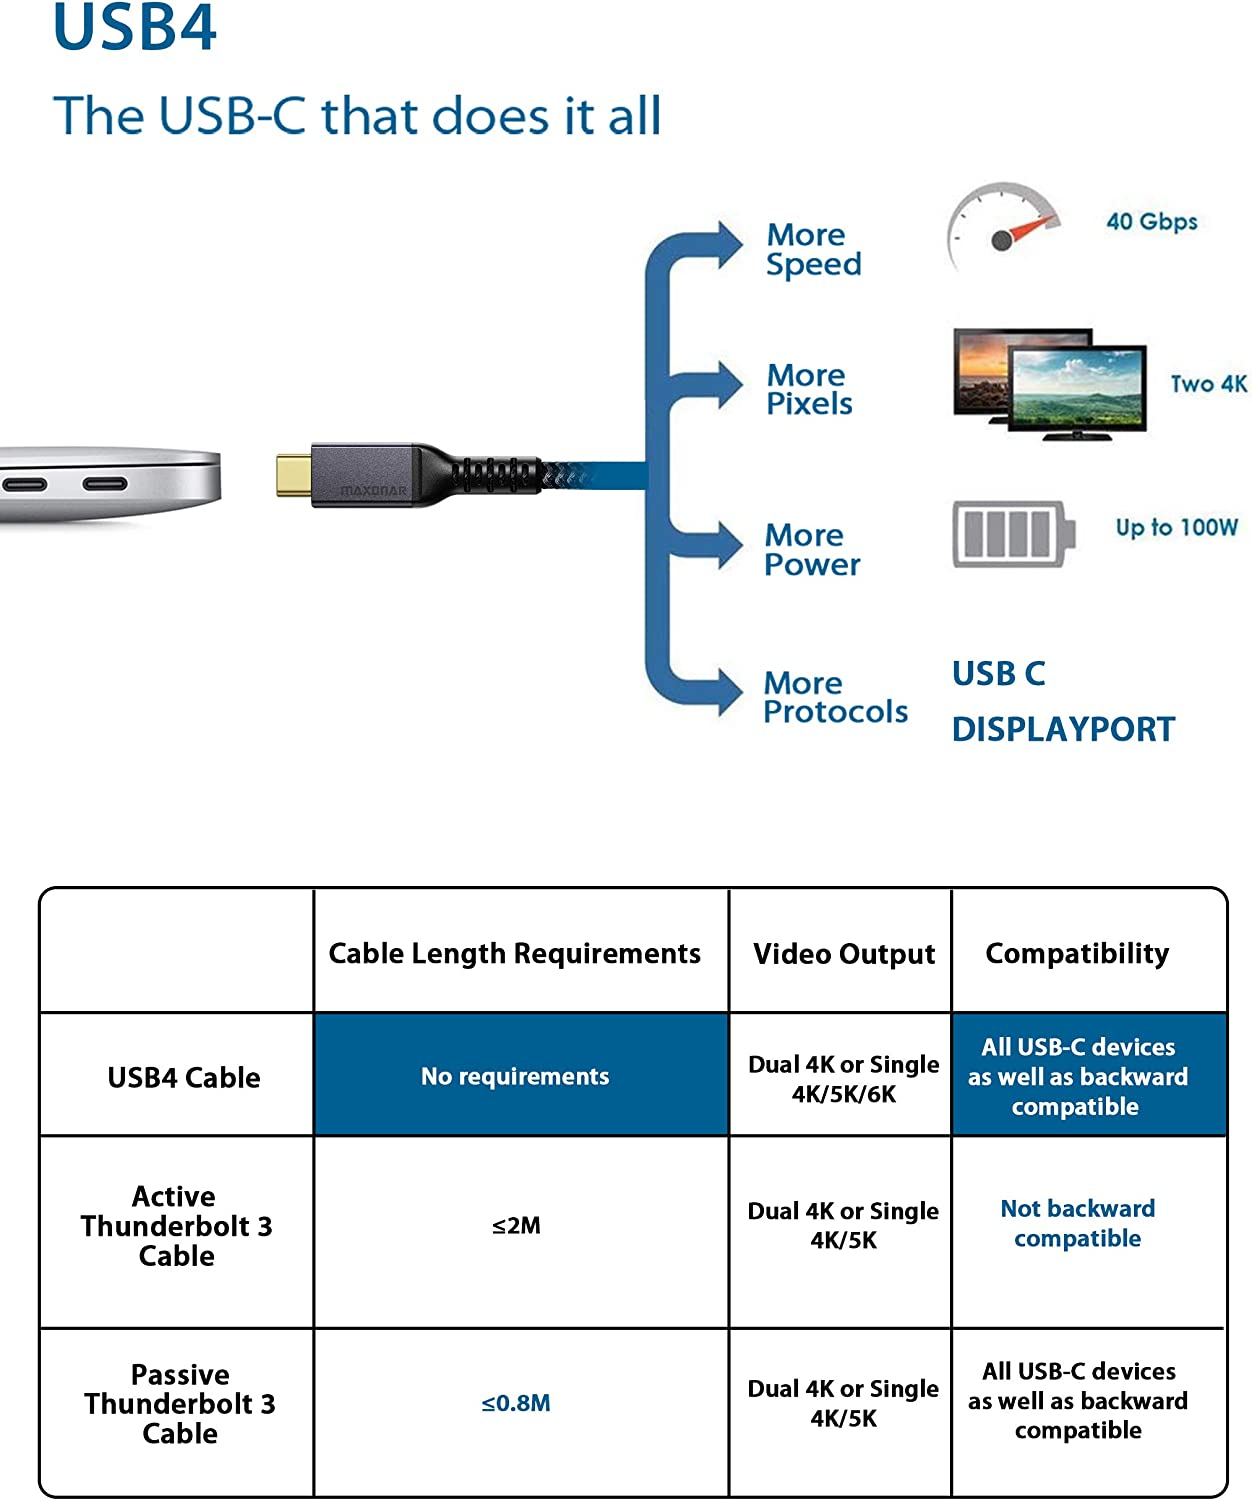 USB-C Docking Station Maxonar USB4 Cable 20V//5A Supports Single 5K 60hz or 2X 4K 60hz Monitor 1.2M External Gpu External SSD USB4 Cable Compatible for Thunderbolt 3 4Ft//40Gbps//5K//100W eGpu